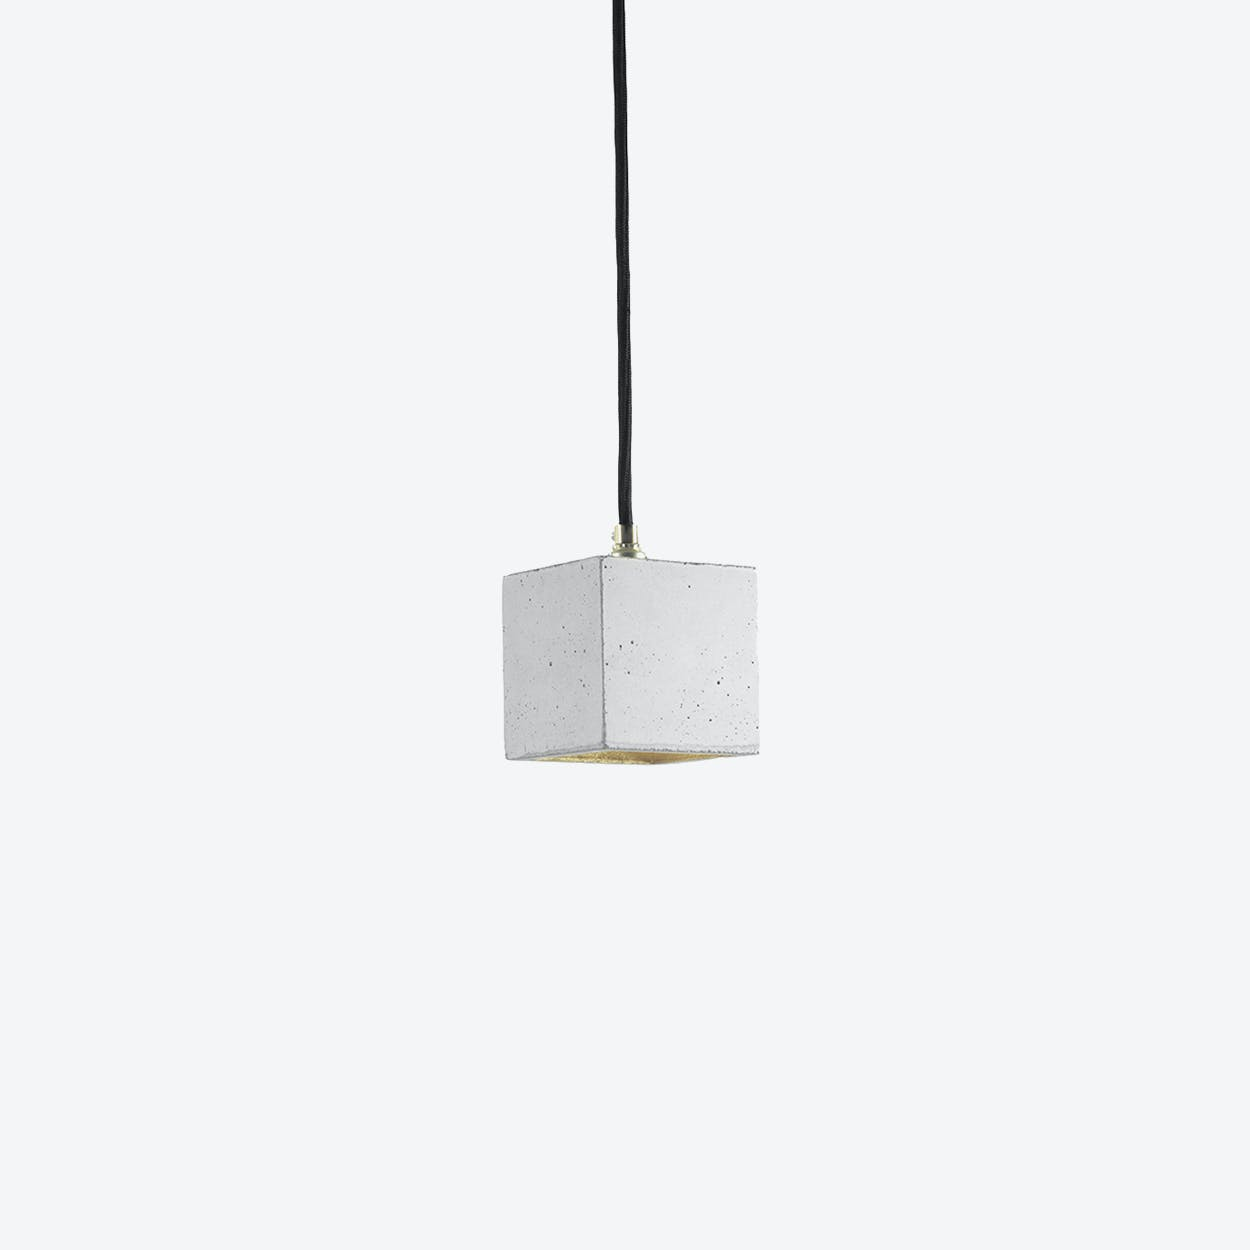 Concrete Pendant Light Cubic Small B6 in Light Grey and Gold